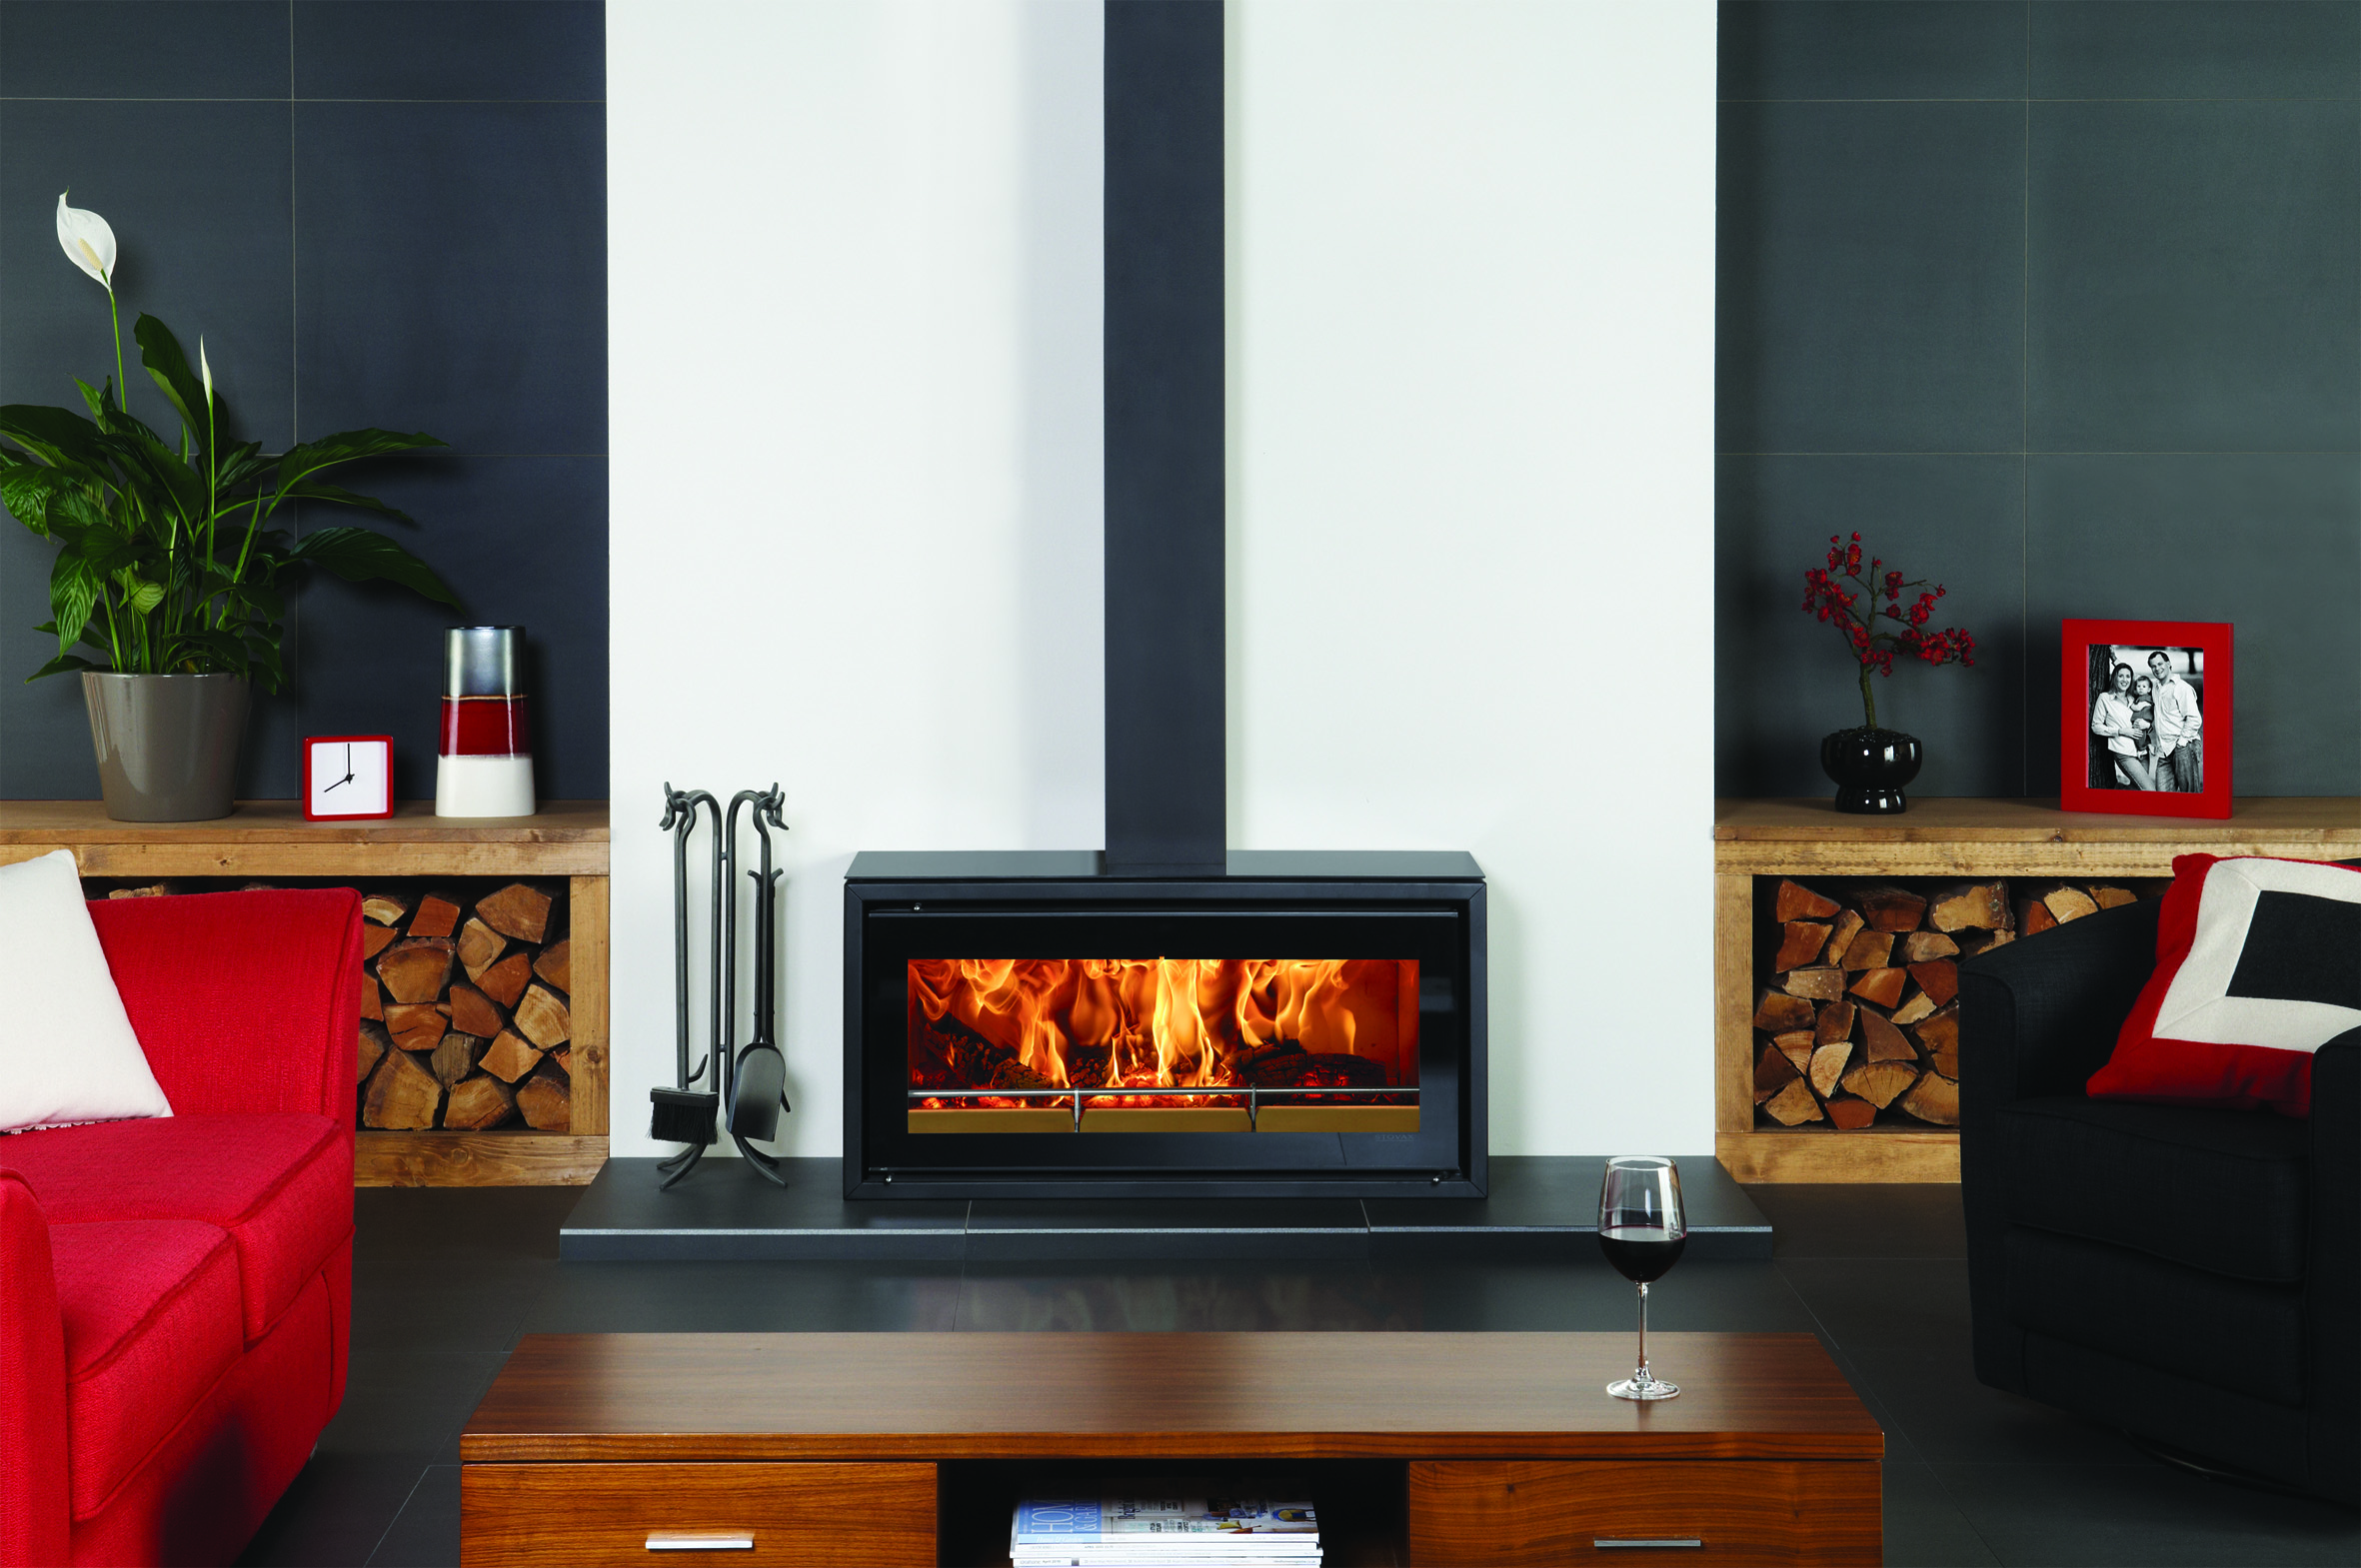 wood multi burning fireplace standing jubilee freestanding store fireplaces stove free fuel stoves fireside lotus roomset